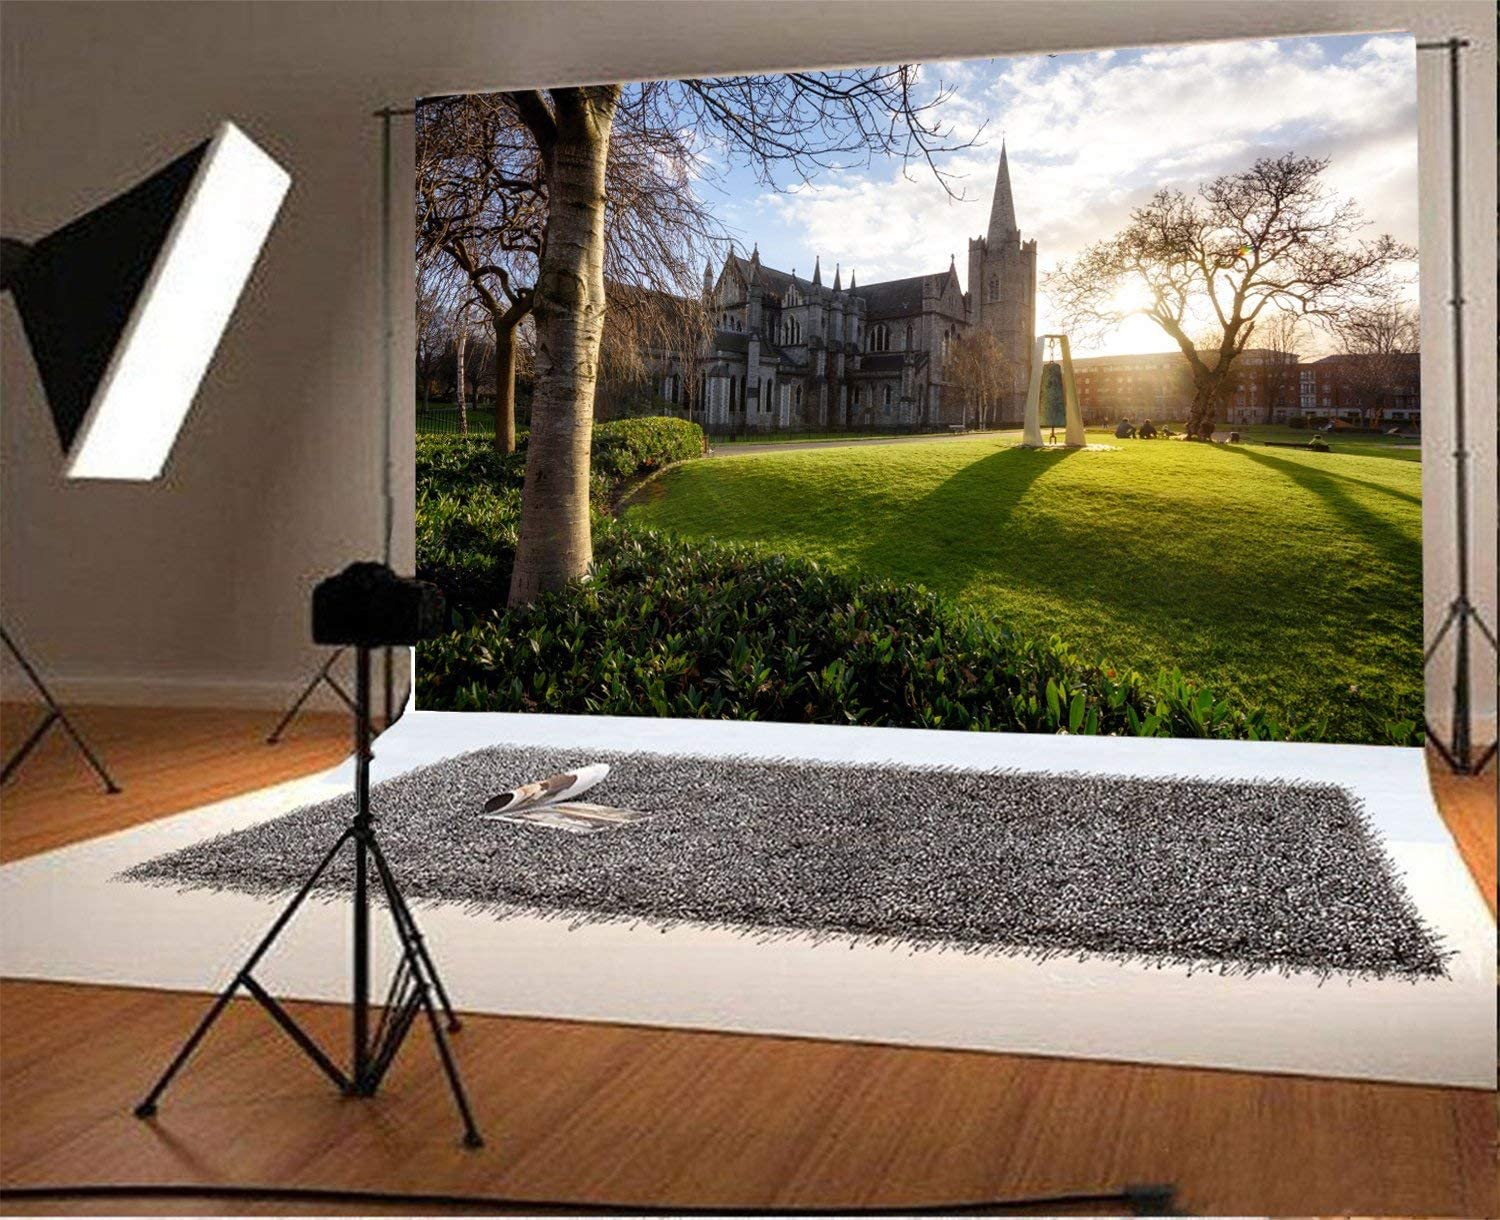 10x6.5ft Polyester Photography Backdrop St Patricks Cathedral Dublin Ireland Places of Worship Green Grassland Sunshine Blue Sky White Cloud Outdoor Photo Background Children Adults Portraits